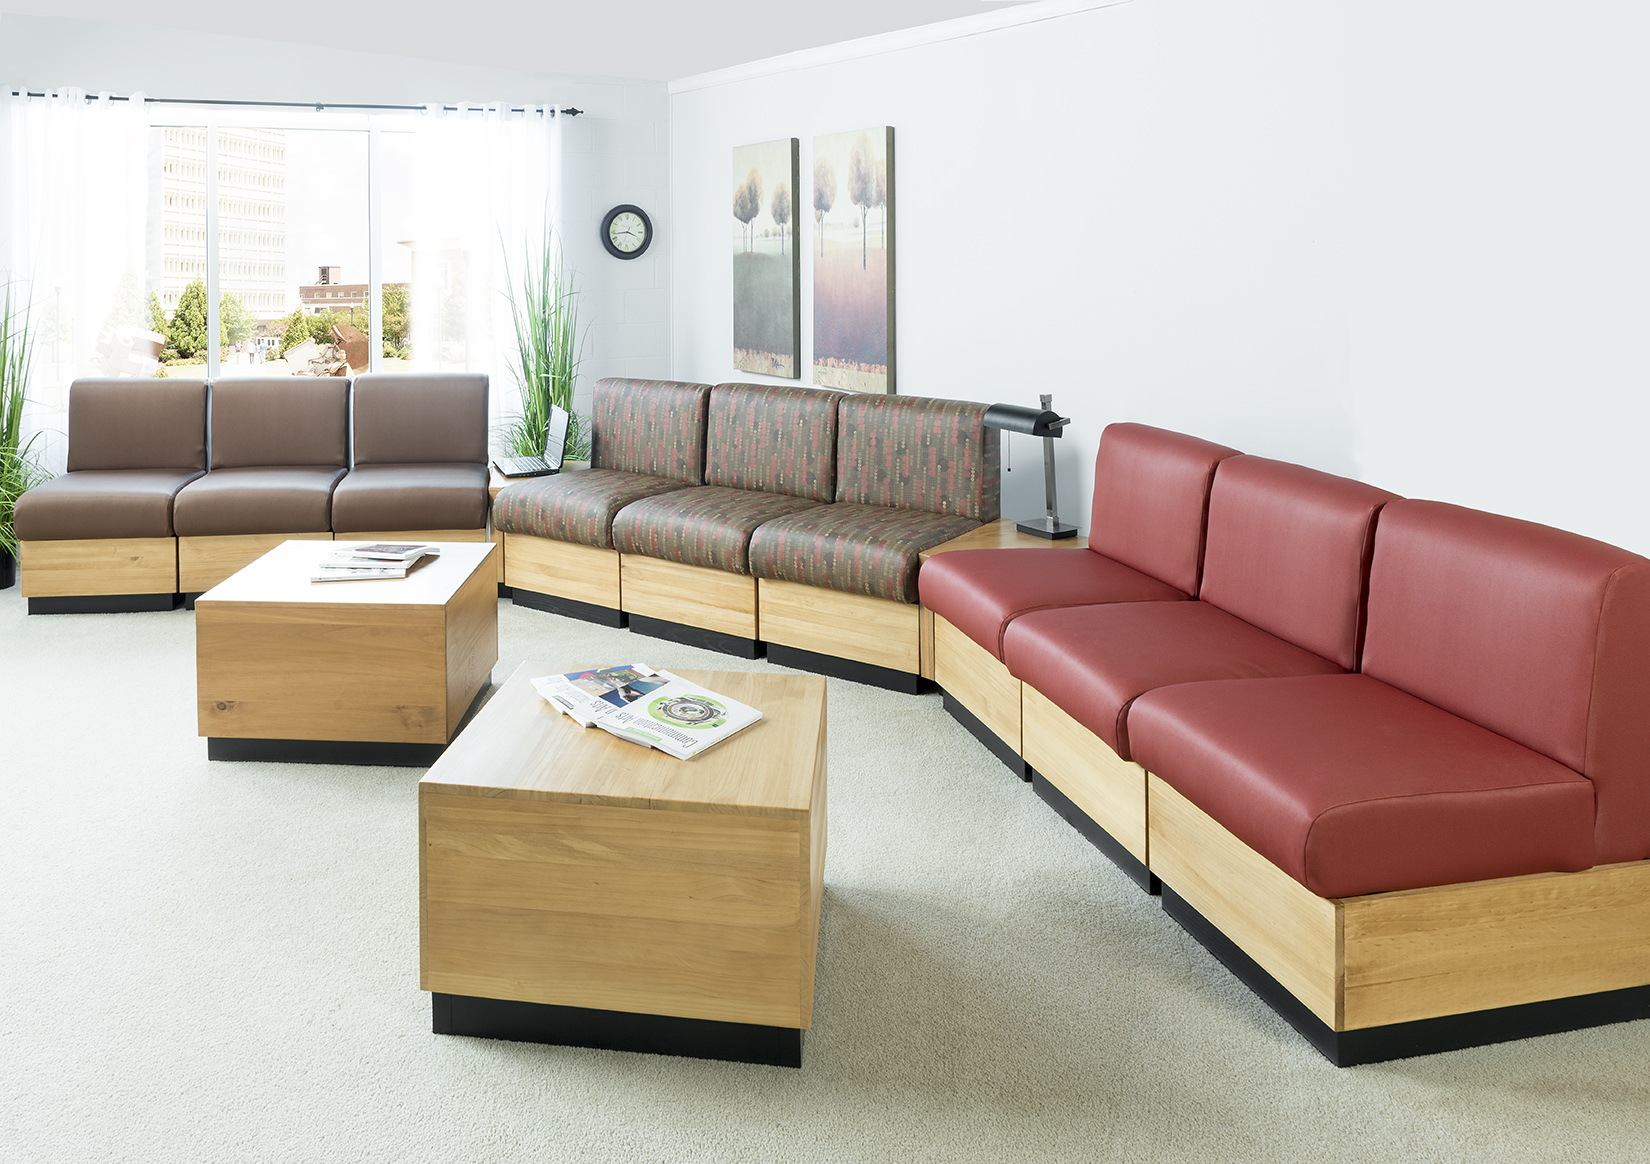 COntract Modular chairs and tables